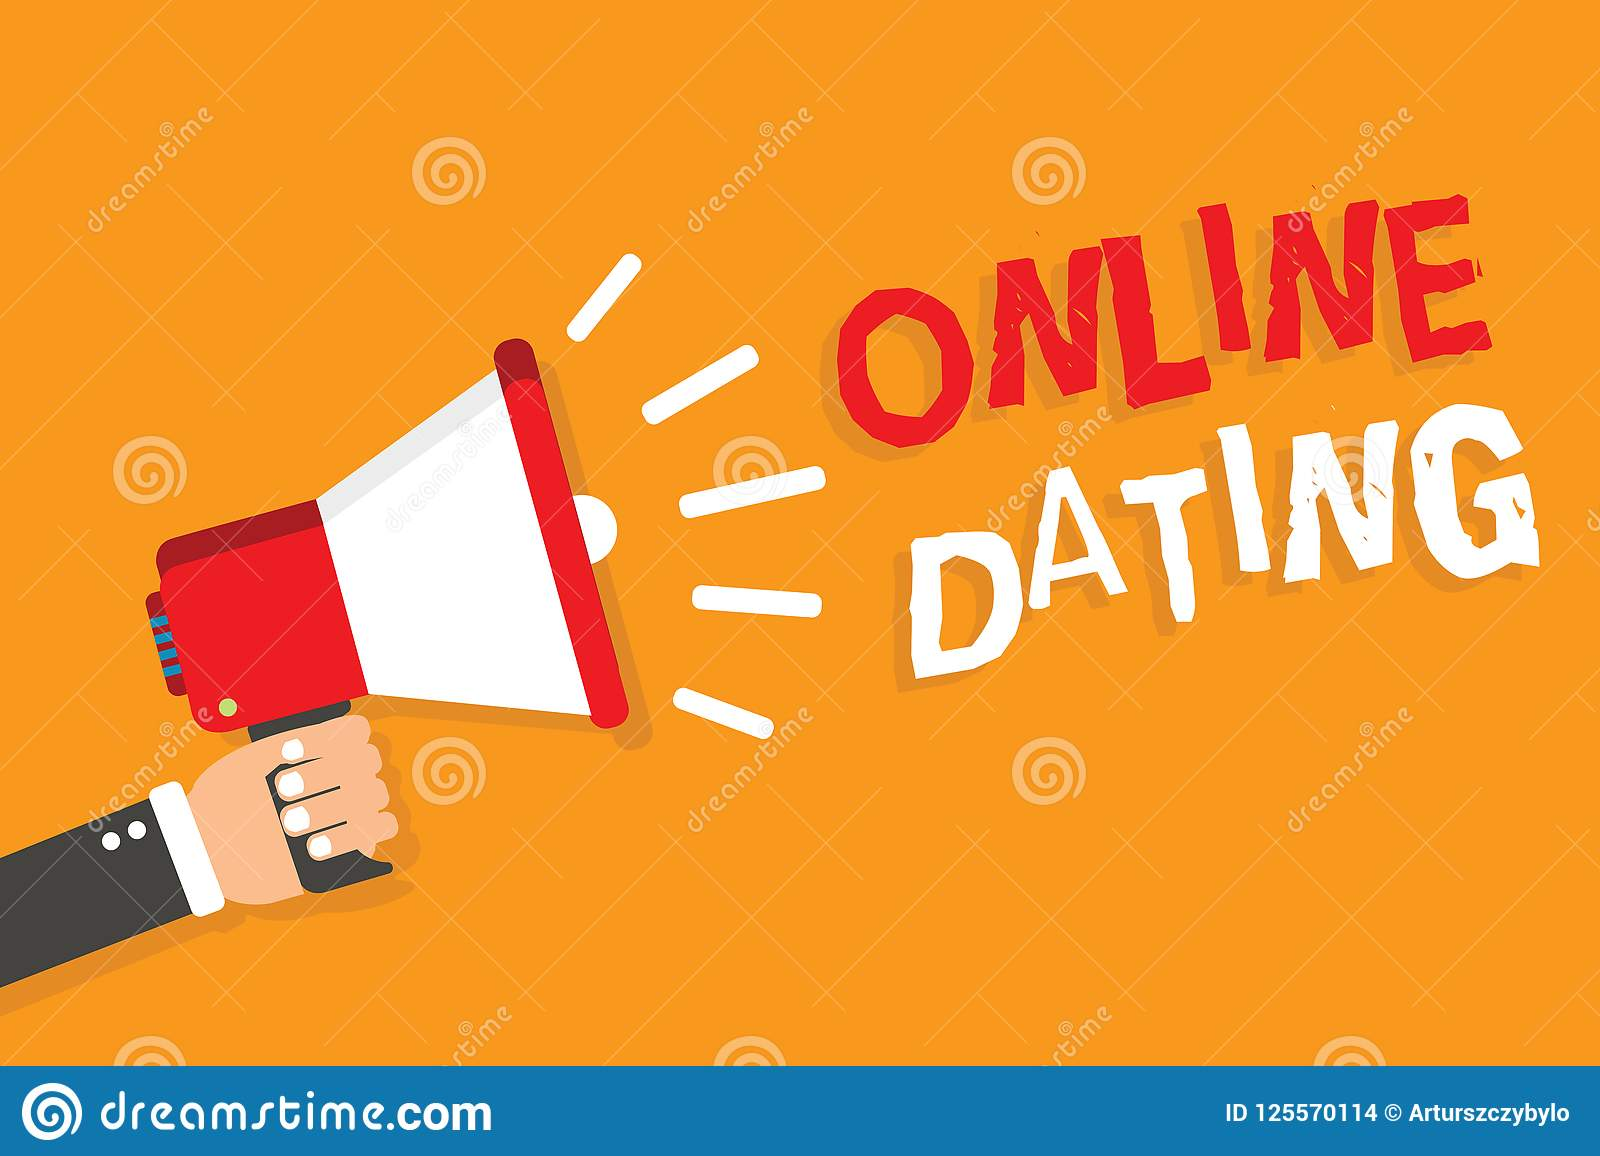 Searching for dating